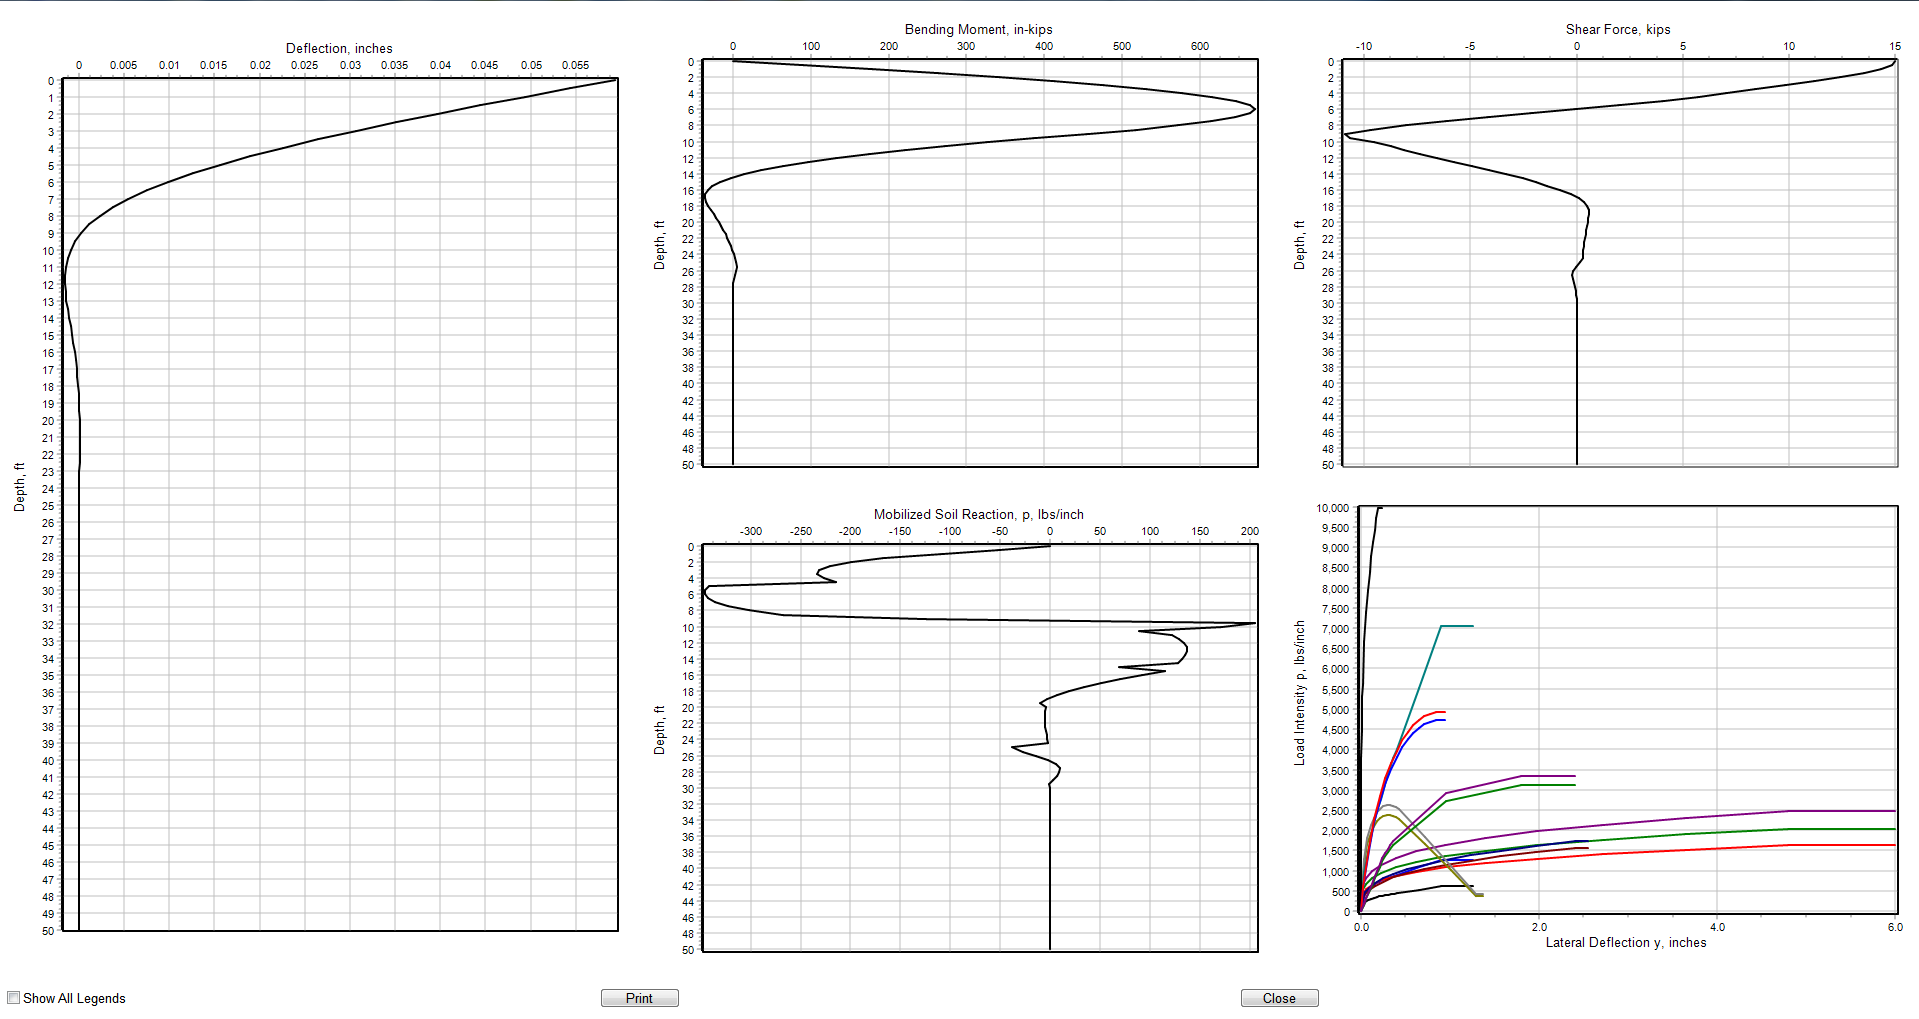 Lpile Ensoft Inc Bending Moment Diagram Resulting From The Elastic Analysis Of A In Multilayered Soil Multi Plot